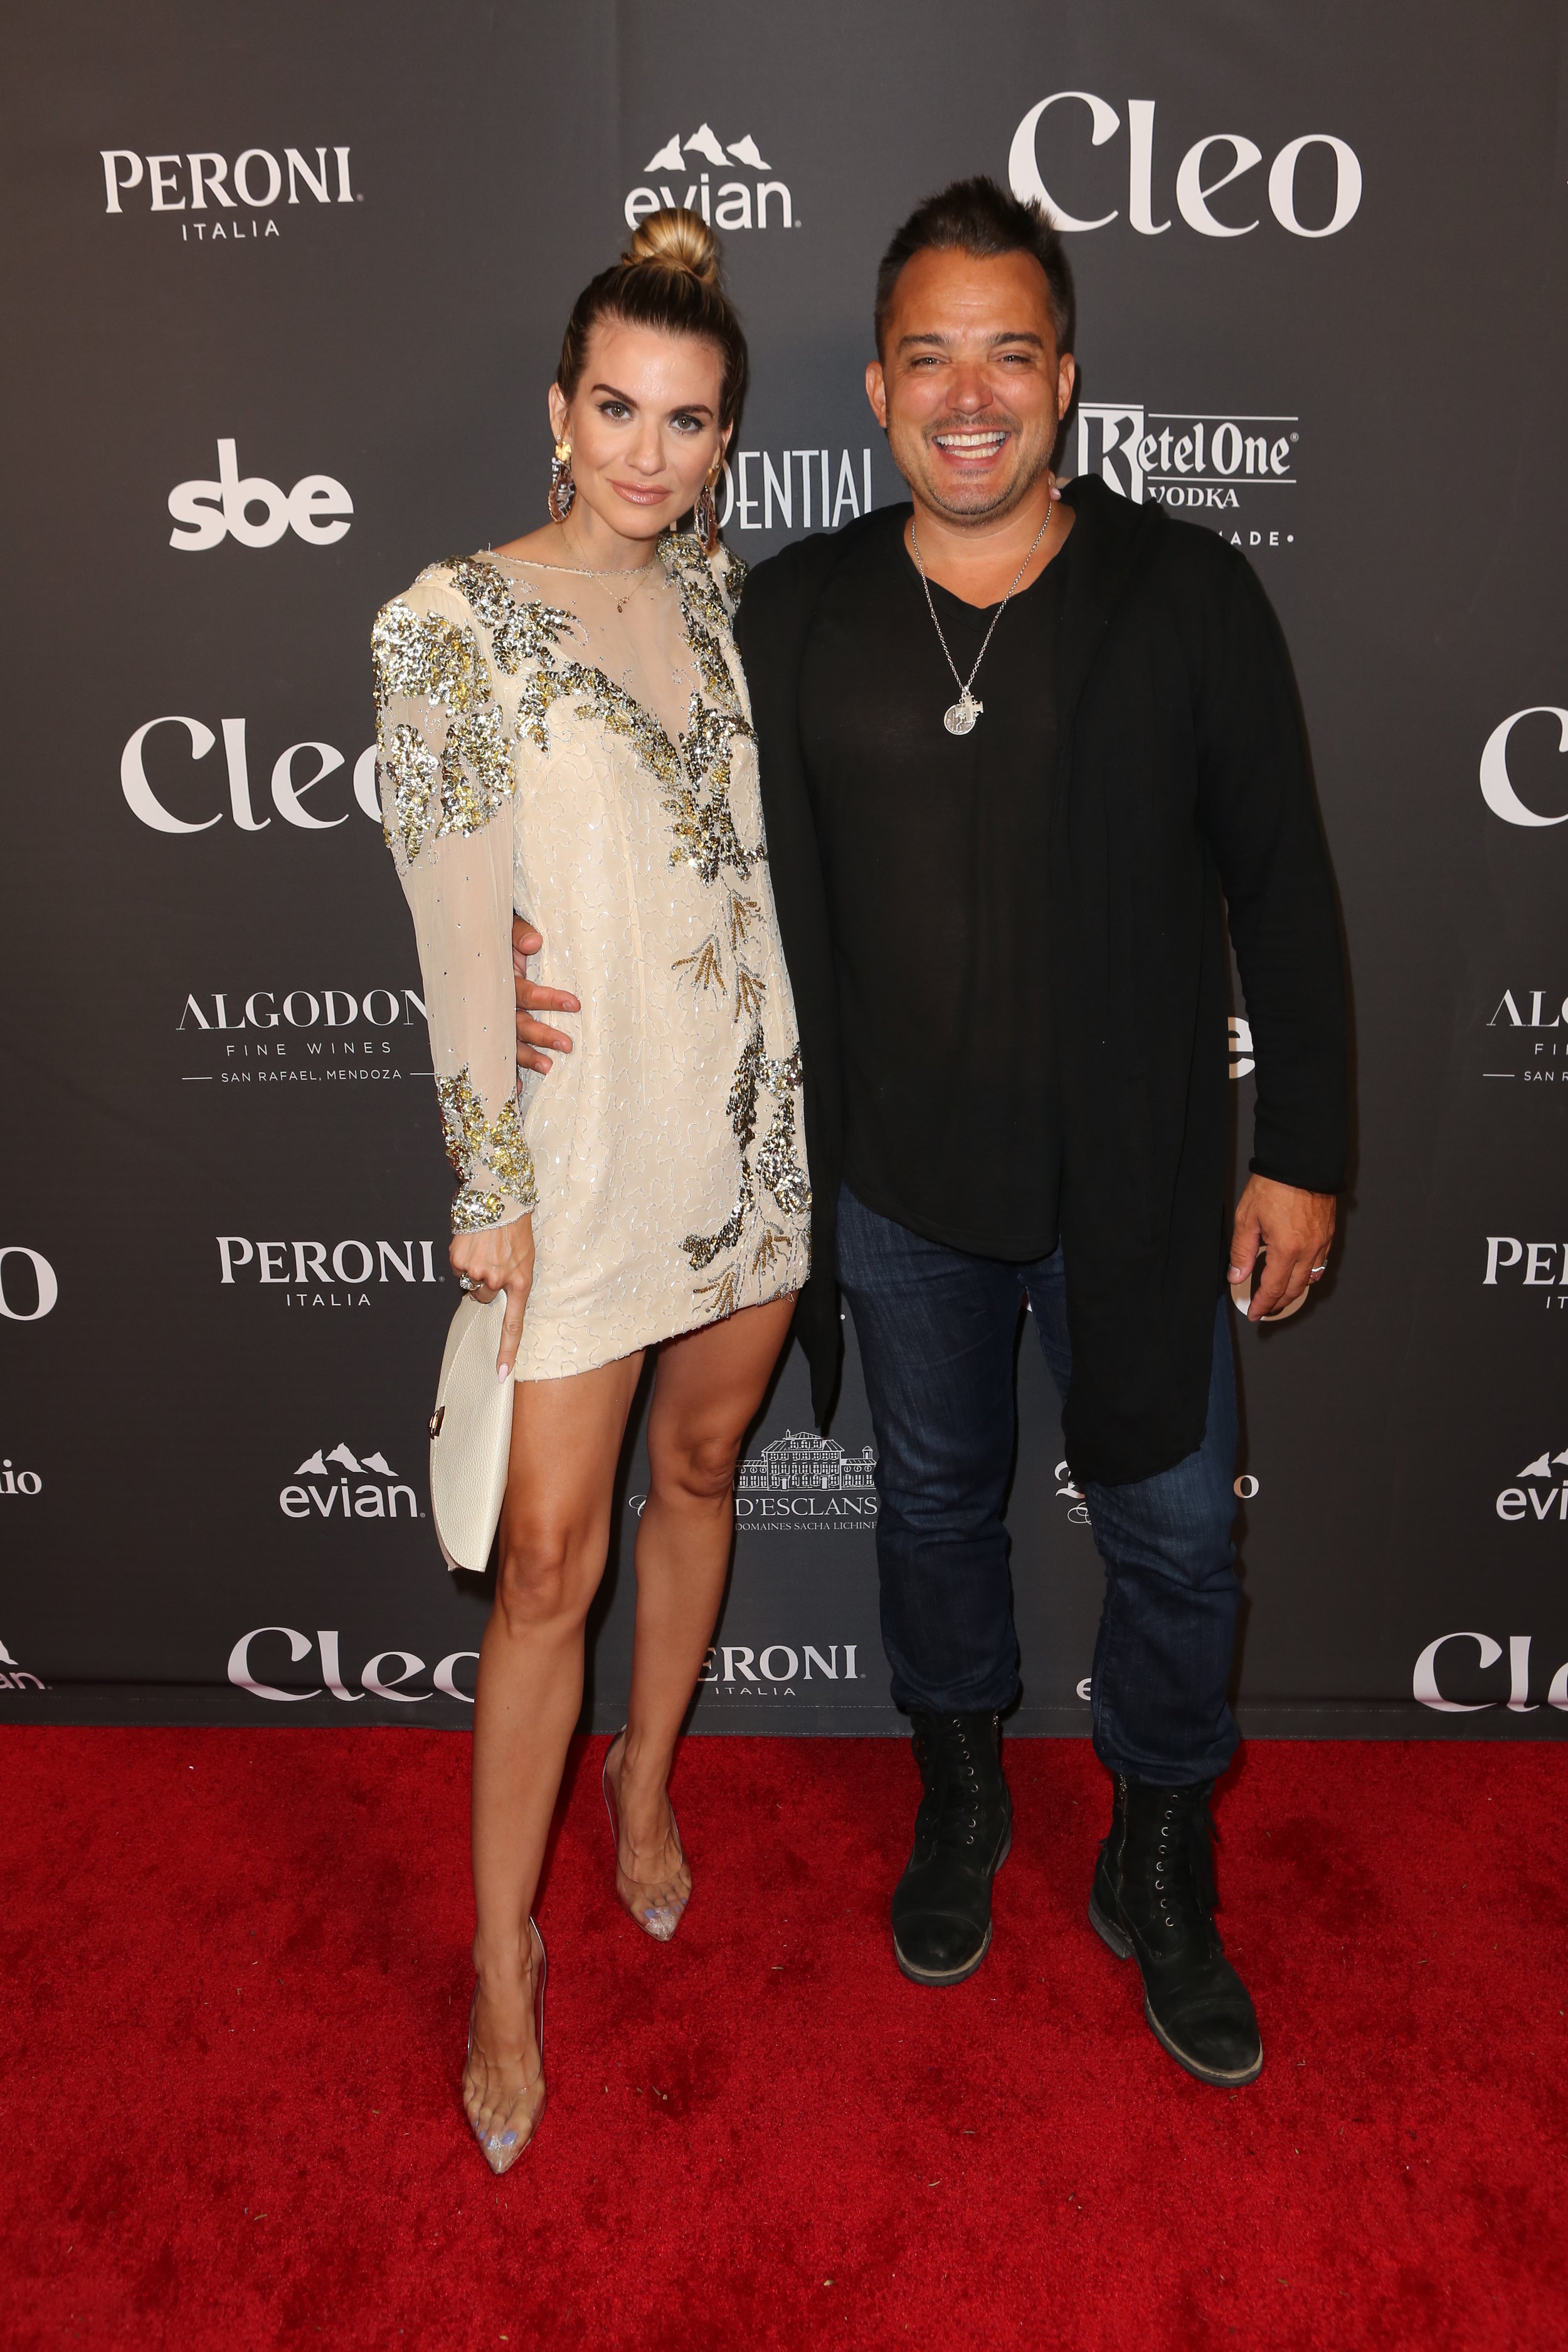 The VIP Grand Re-Opening reception of Cleo Hollywood at h.club was held on Friday, June 14th